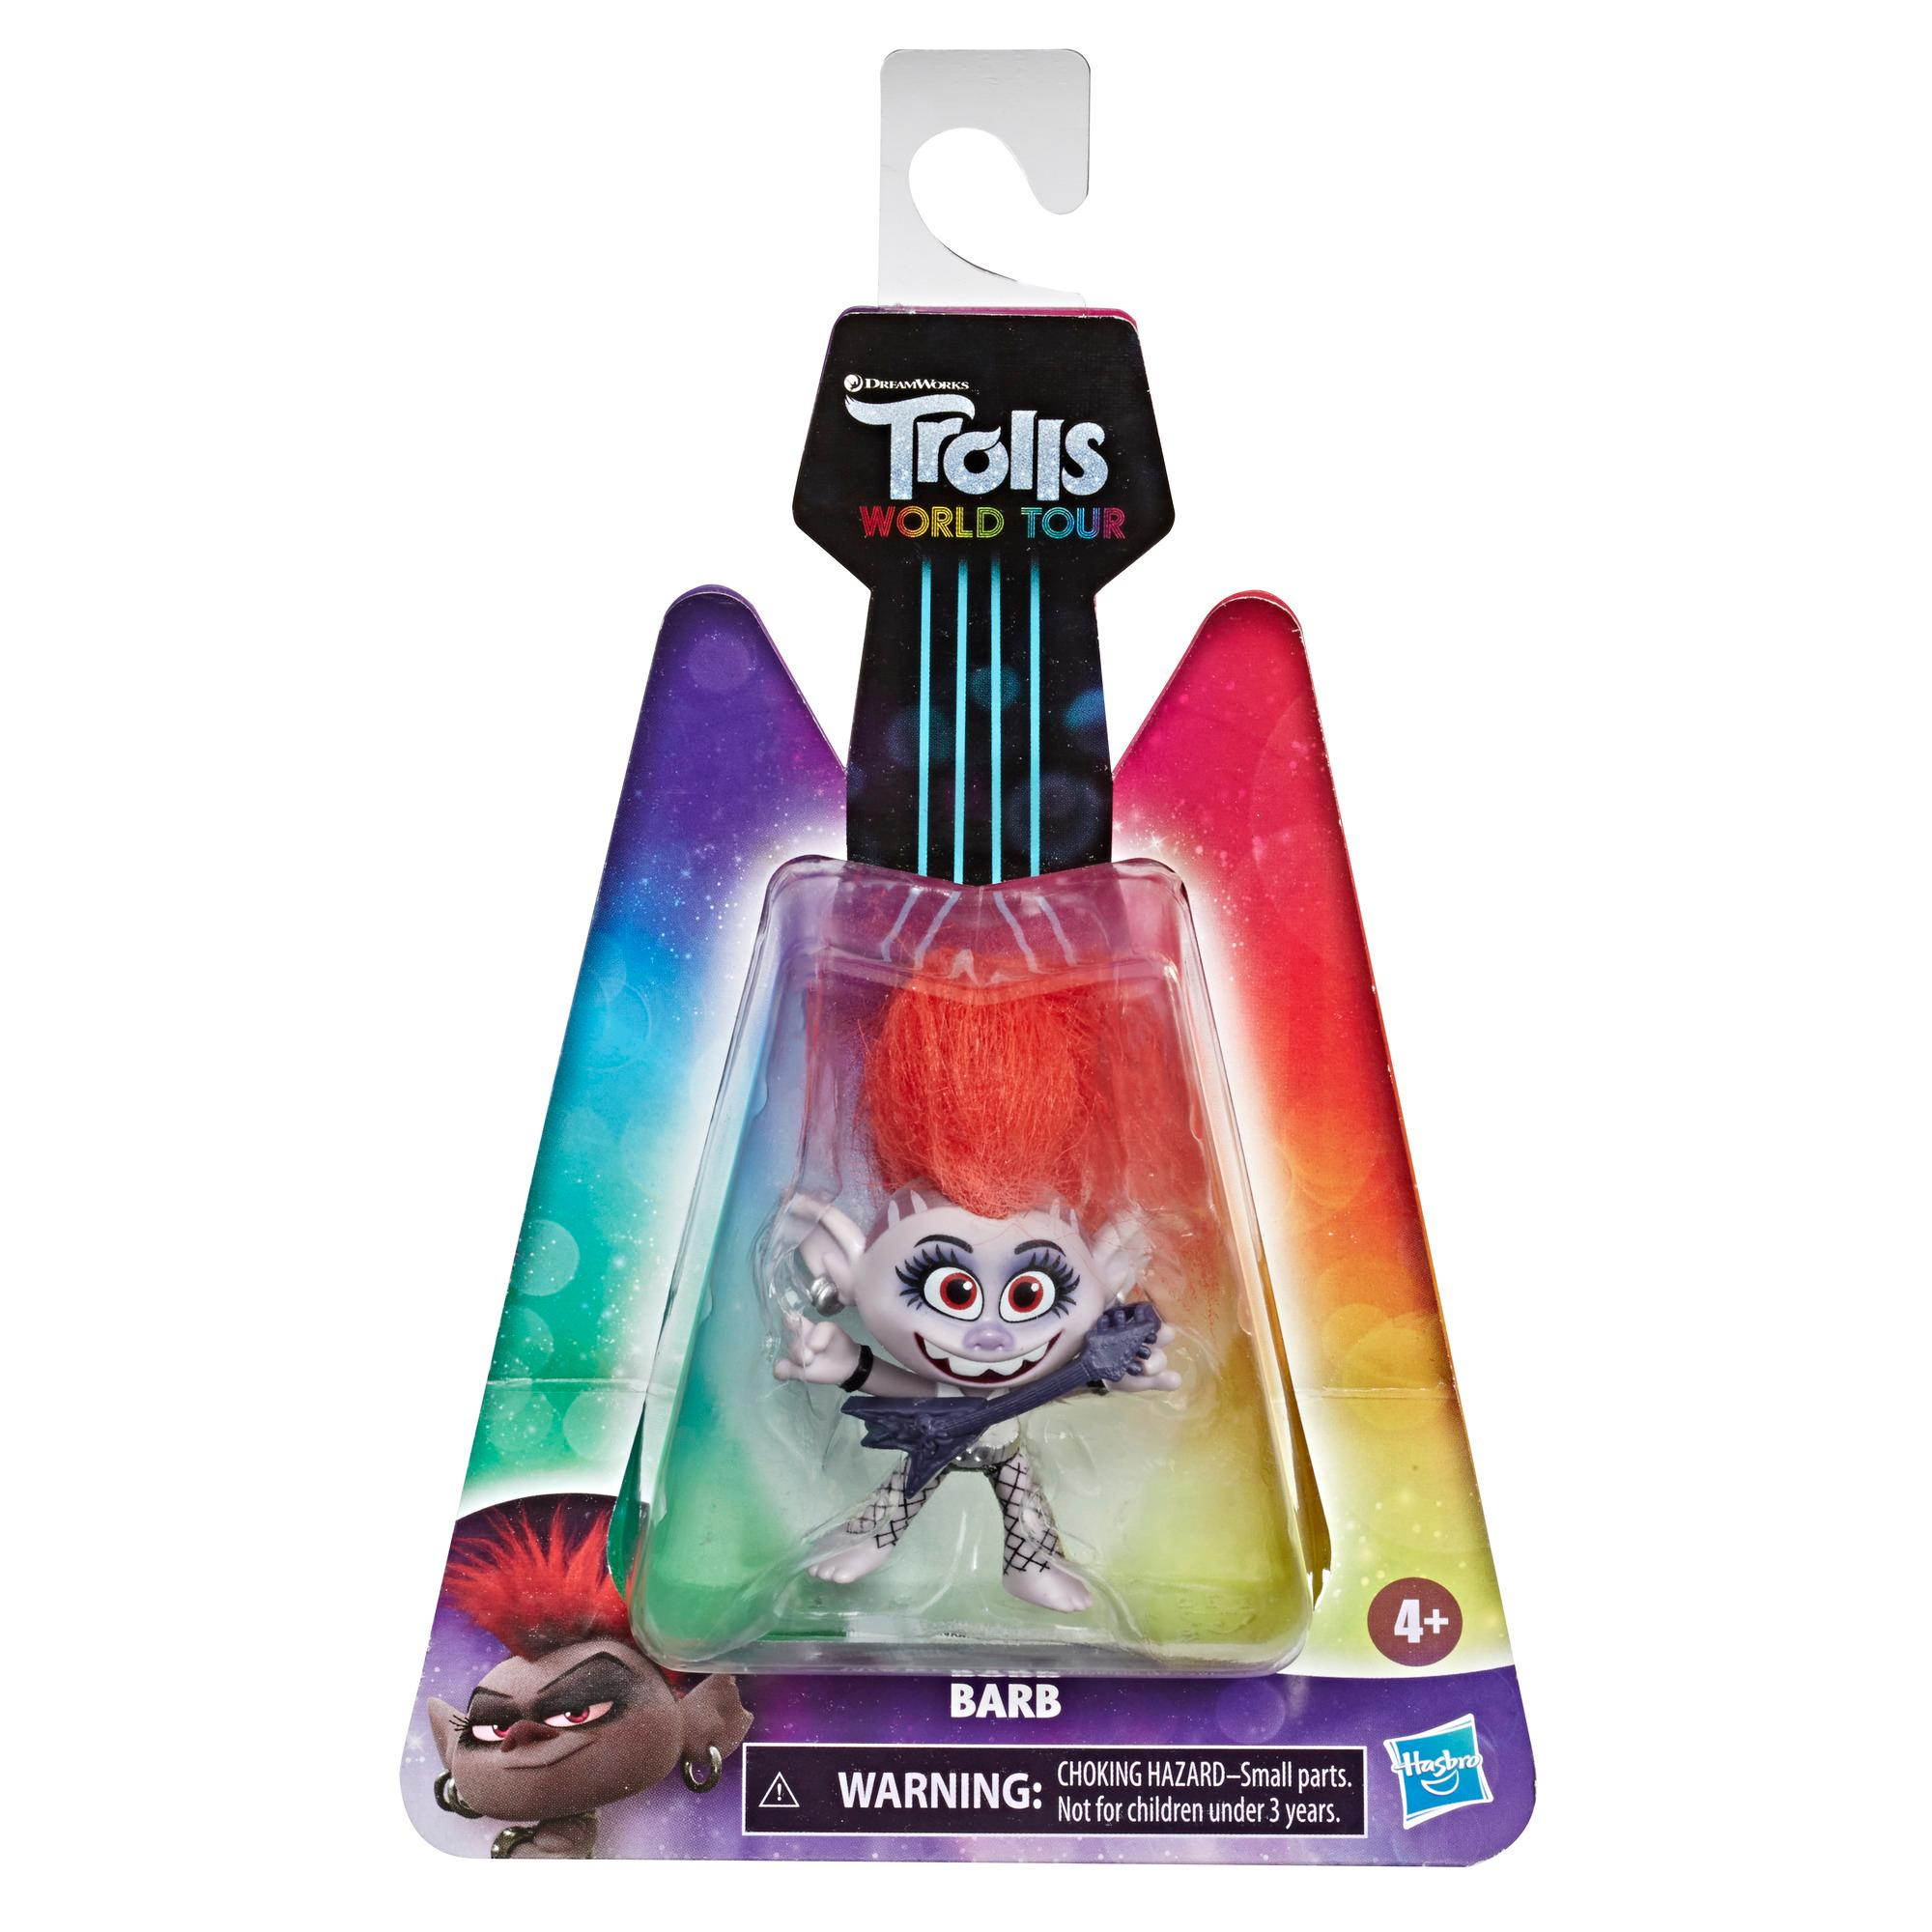 DreamWorks Trolls World Tour - Barb - Bambola con chitarra - Giocattolo ispirato al film Trolls World Tour